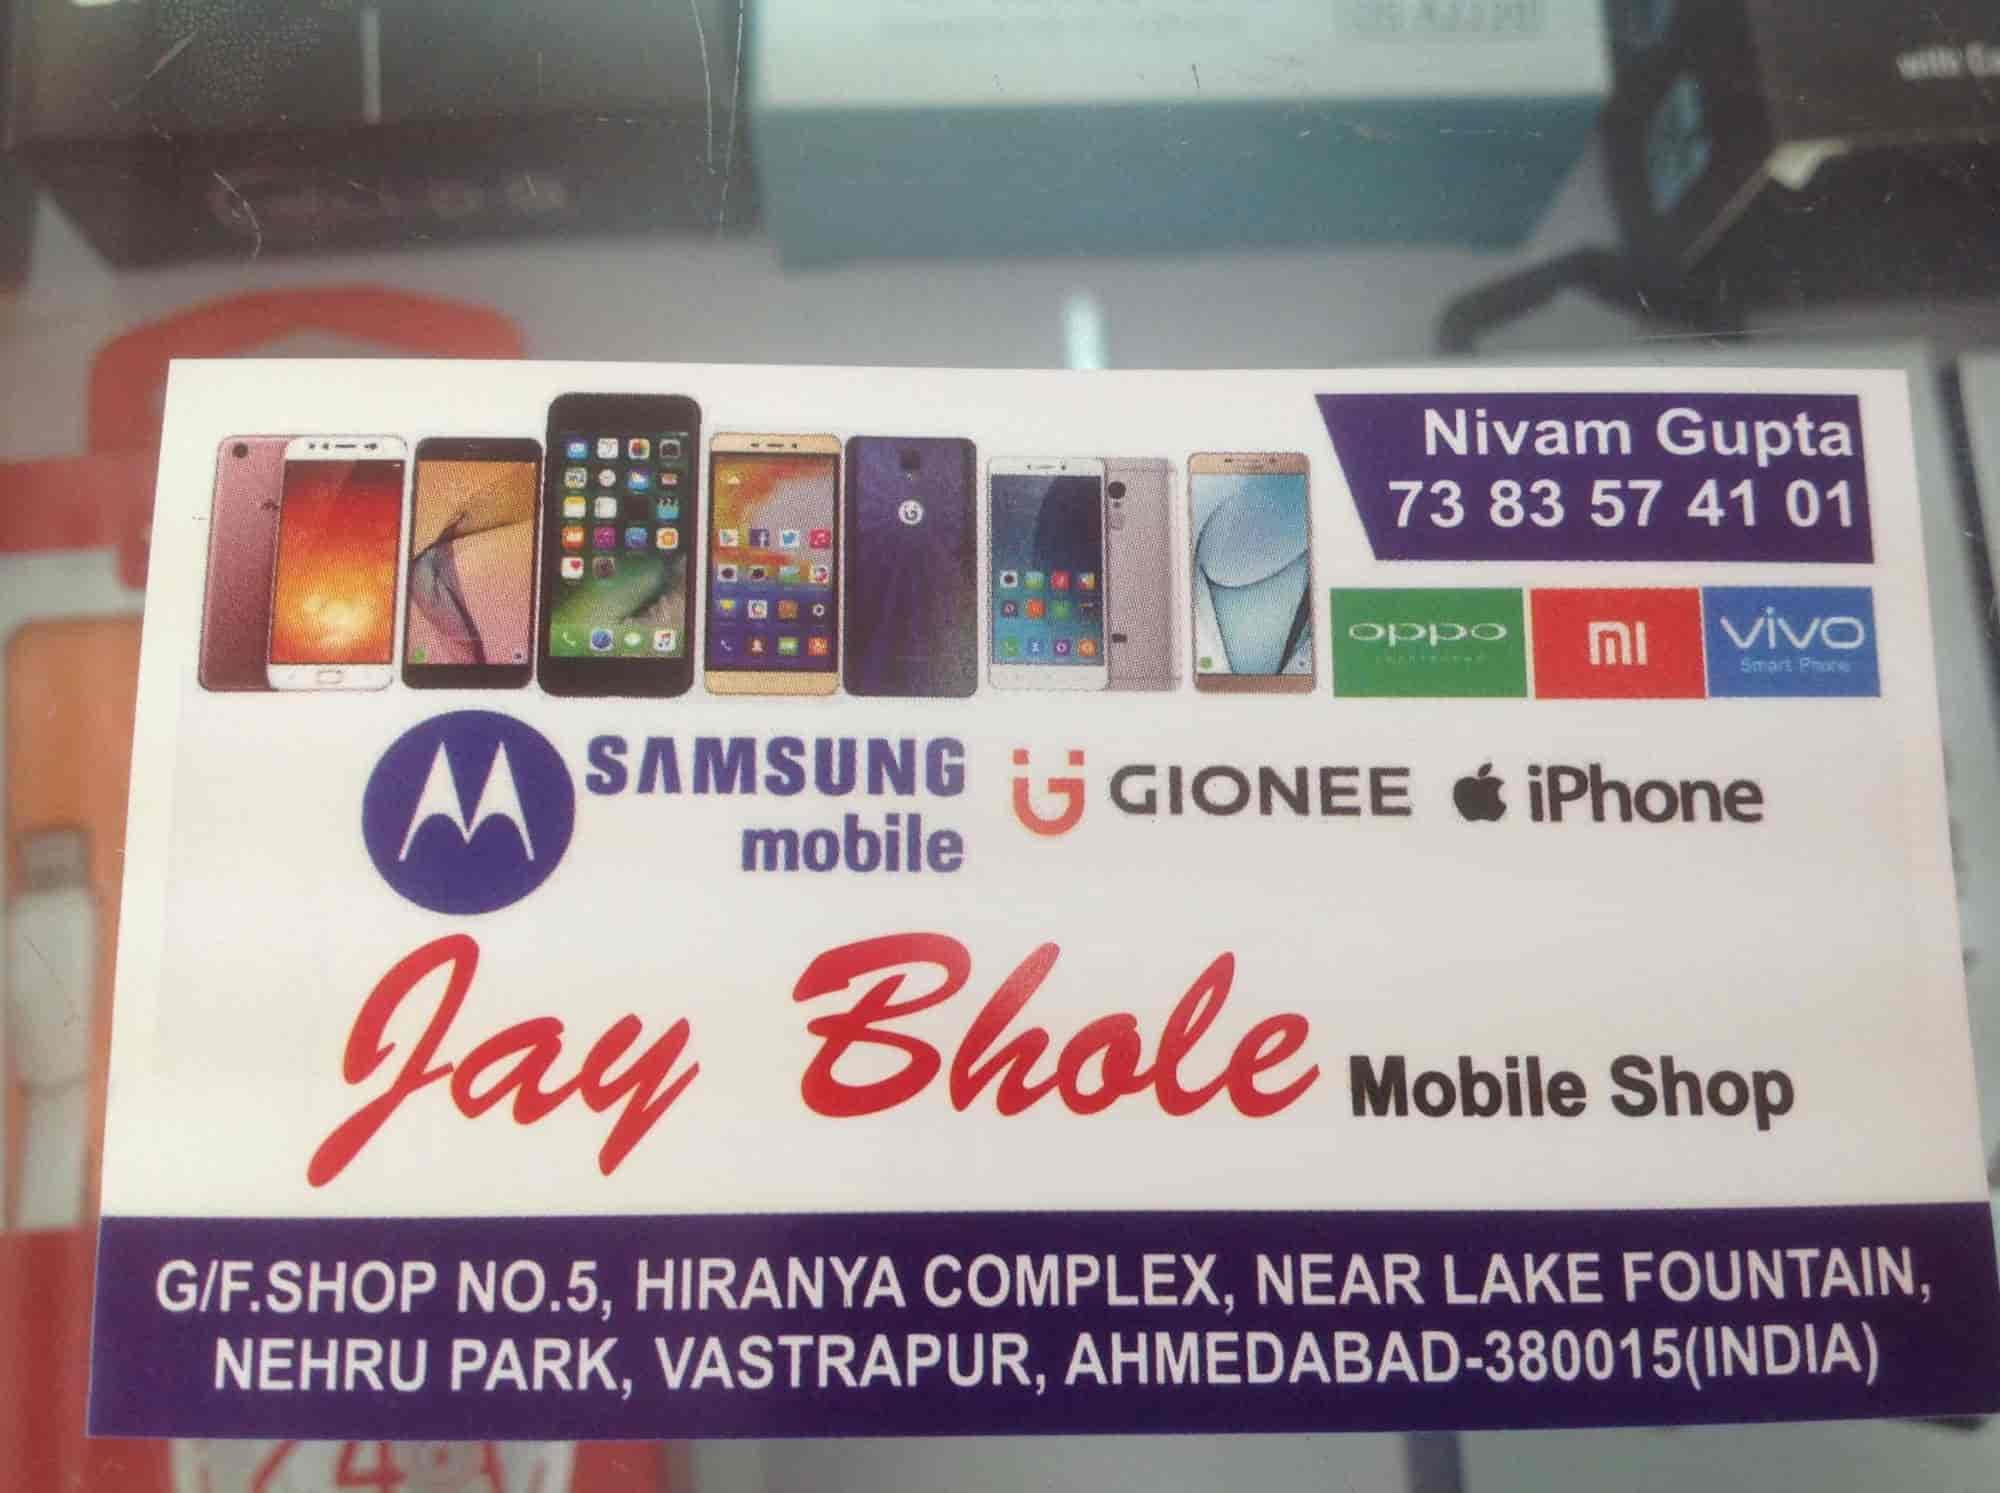 Jay Bhole Mobile Shop Photos Vastrapur Ahmedabad Pictures Comutronics Electronics Qa Images Gallery Justdial